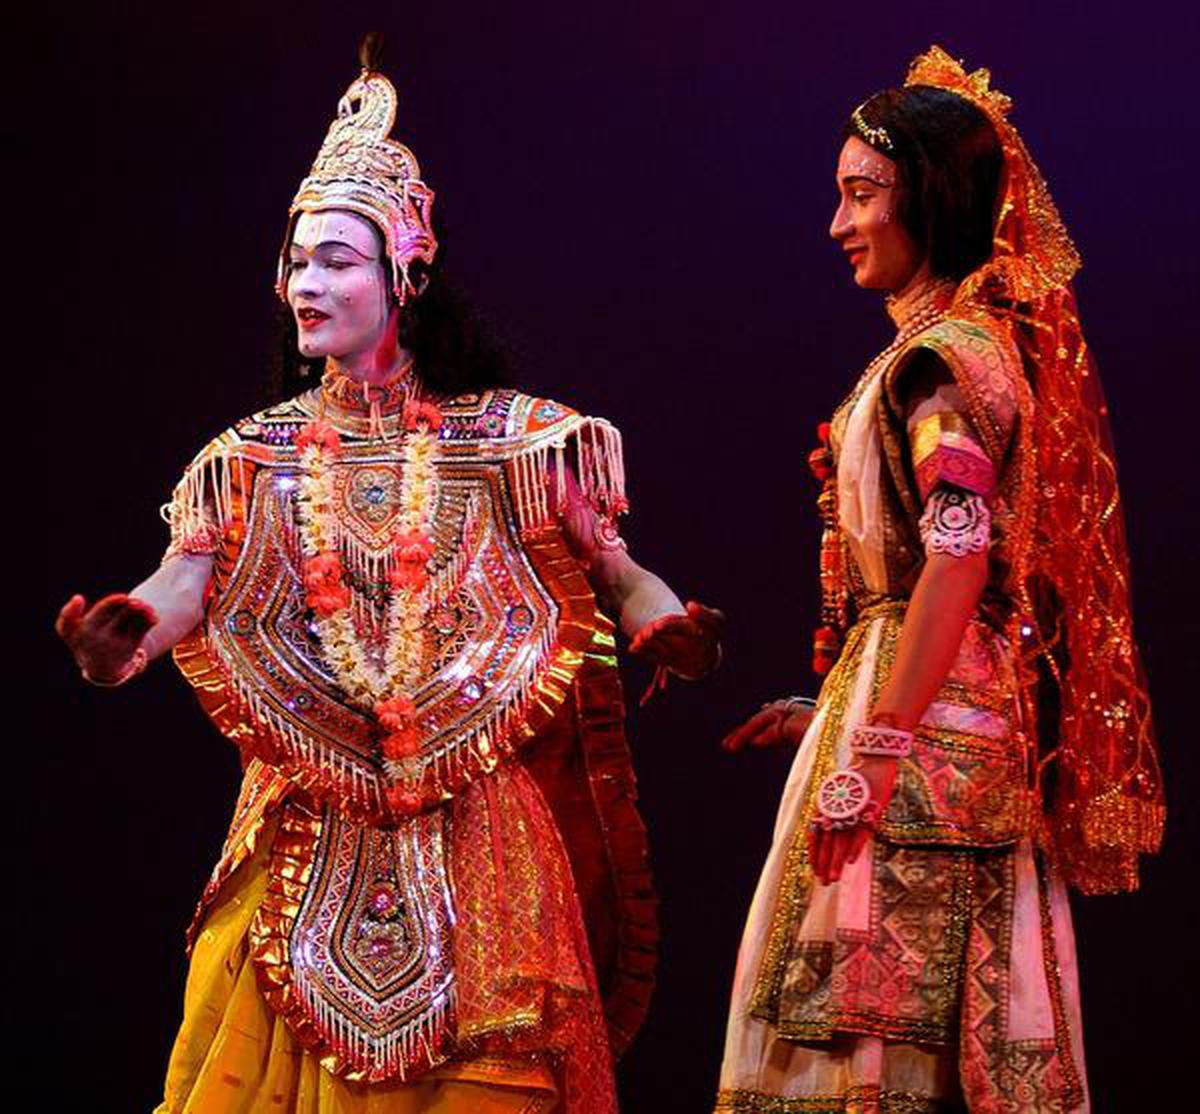 Artists from Majuli island performing their traditional age old dance drama to promote Majuli as World's largest fresh water river-island in Guwahati on September 24, 2006. The people and artists have come out in a great way to show their rich cultural heritage to rest of the world to acquire the UNESCO's World Heritage Site nomination. Majuli, did not make it to the list of UNESCO World Heritage Sites this year as the Assam Government failed to pass the Majuli Cultural Landscape Region Bill 2006 ahead of the ongoing 30th session of the World Heritage Committee at Lithuanian capital of Vilnius. Sociologists have stressed on the preservation of this unique art form and the people of the island whose culture and dance forms are untouched by modernism. Majuli Island, with a population of 1.6 lakhs is situated right in the middle of the Brahmaputra River. Photo: Ritu Raj Konwar